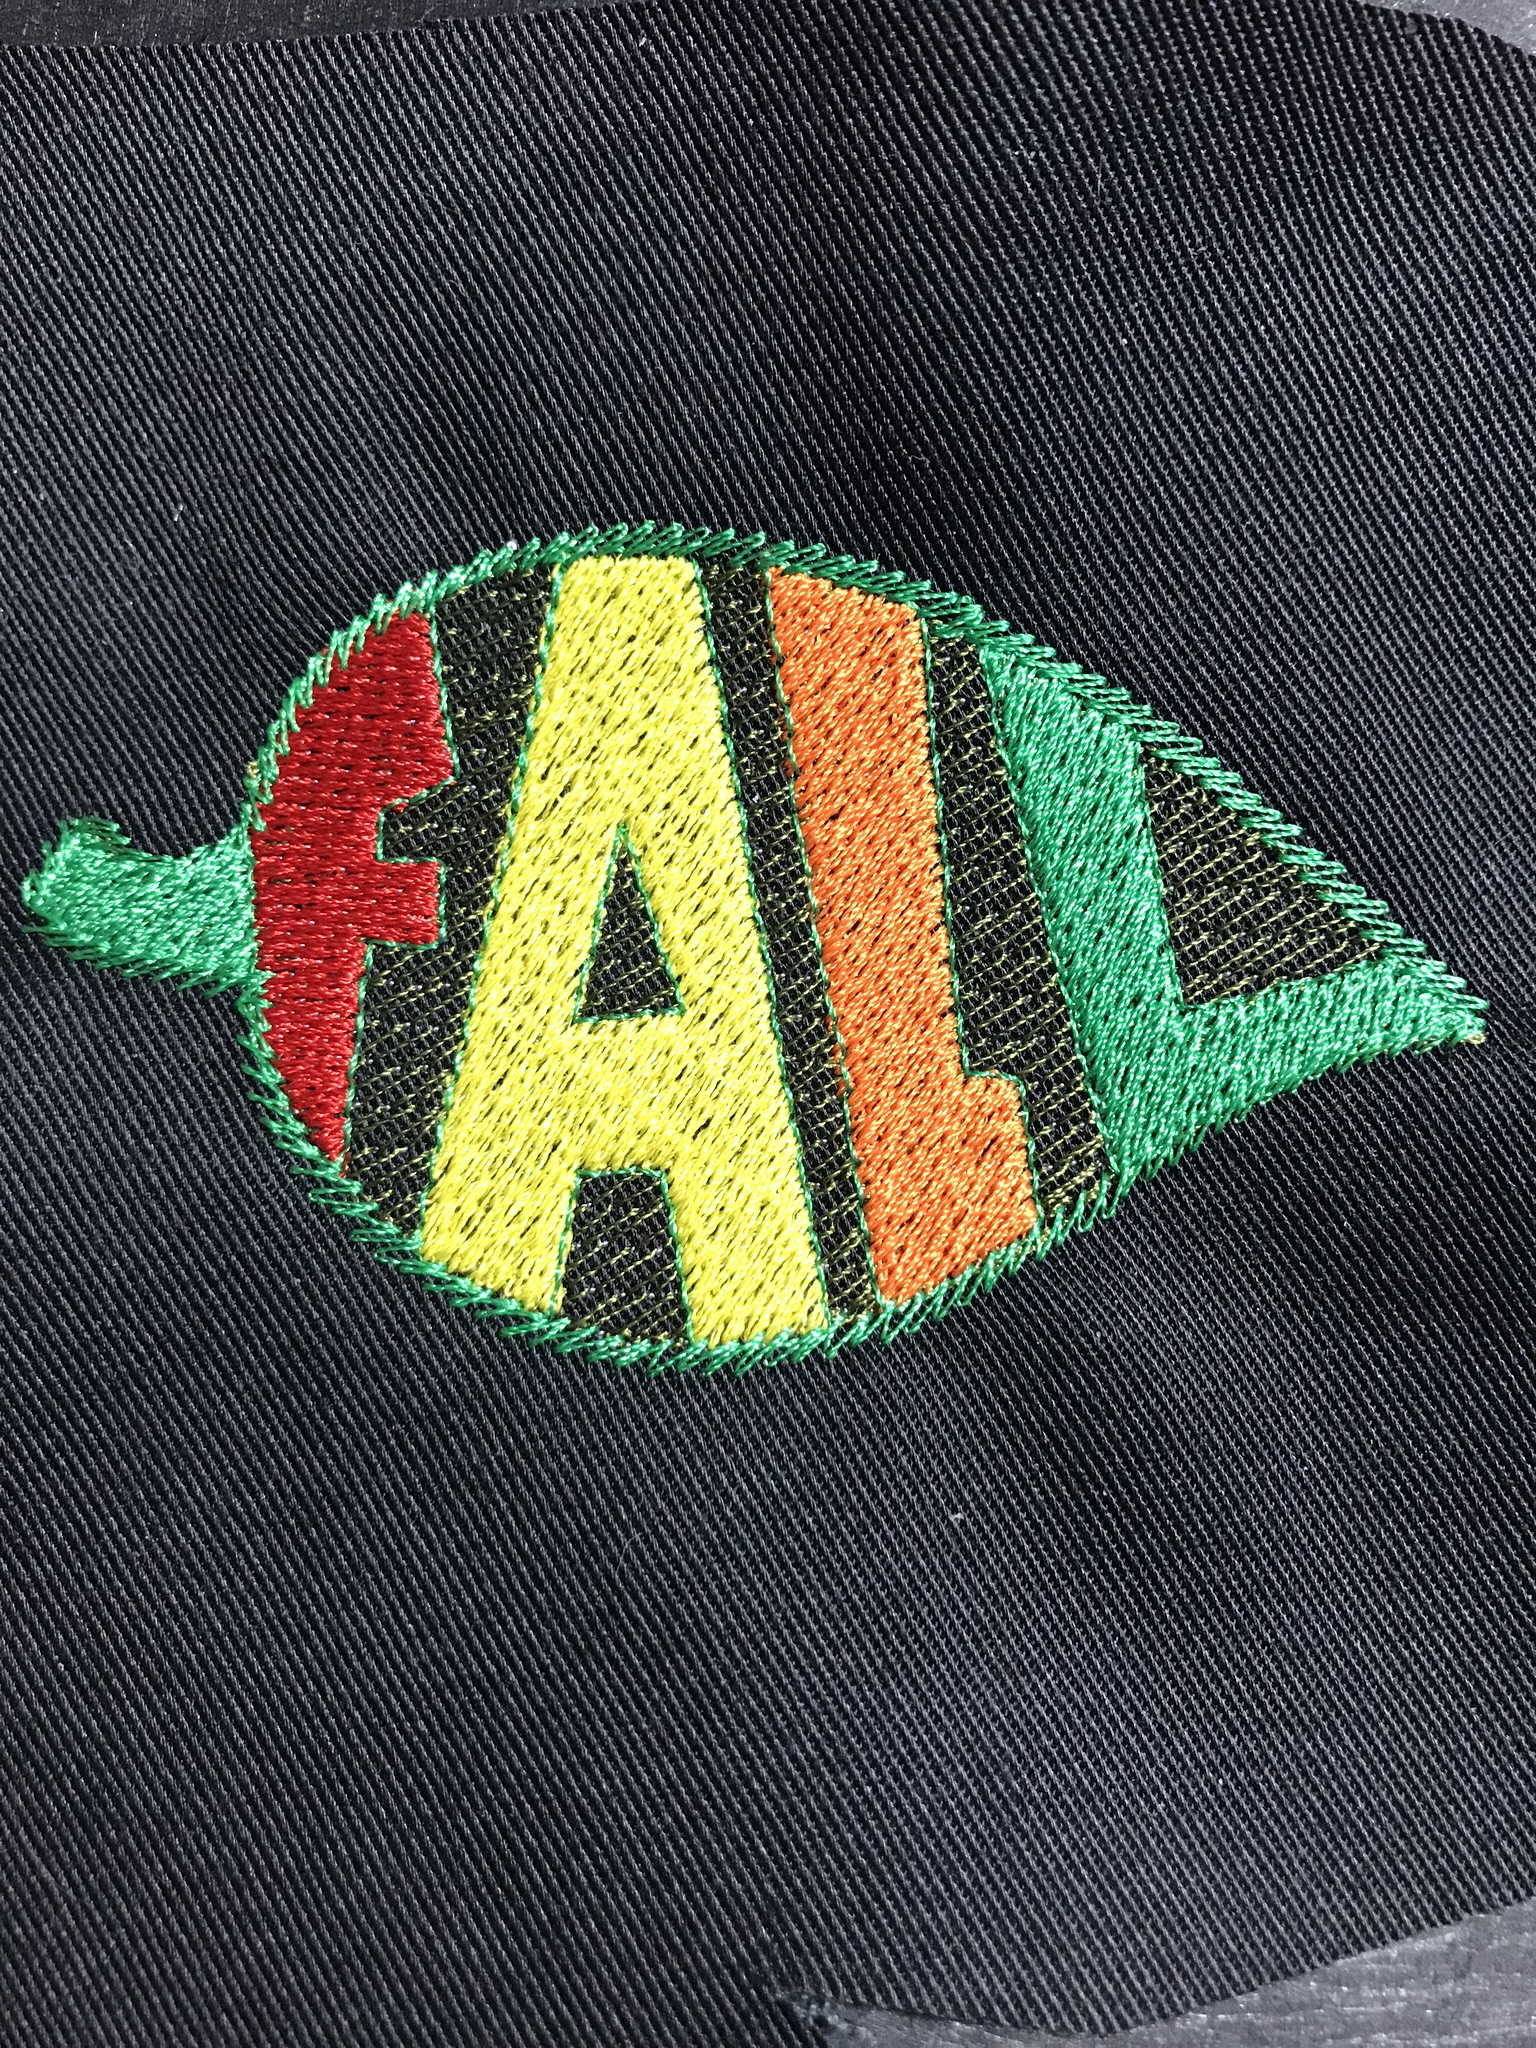 Free Machine Embroidery Design – OML Embroidery